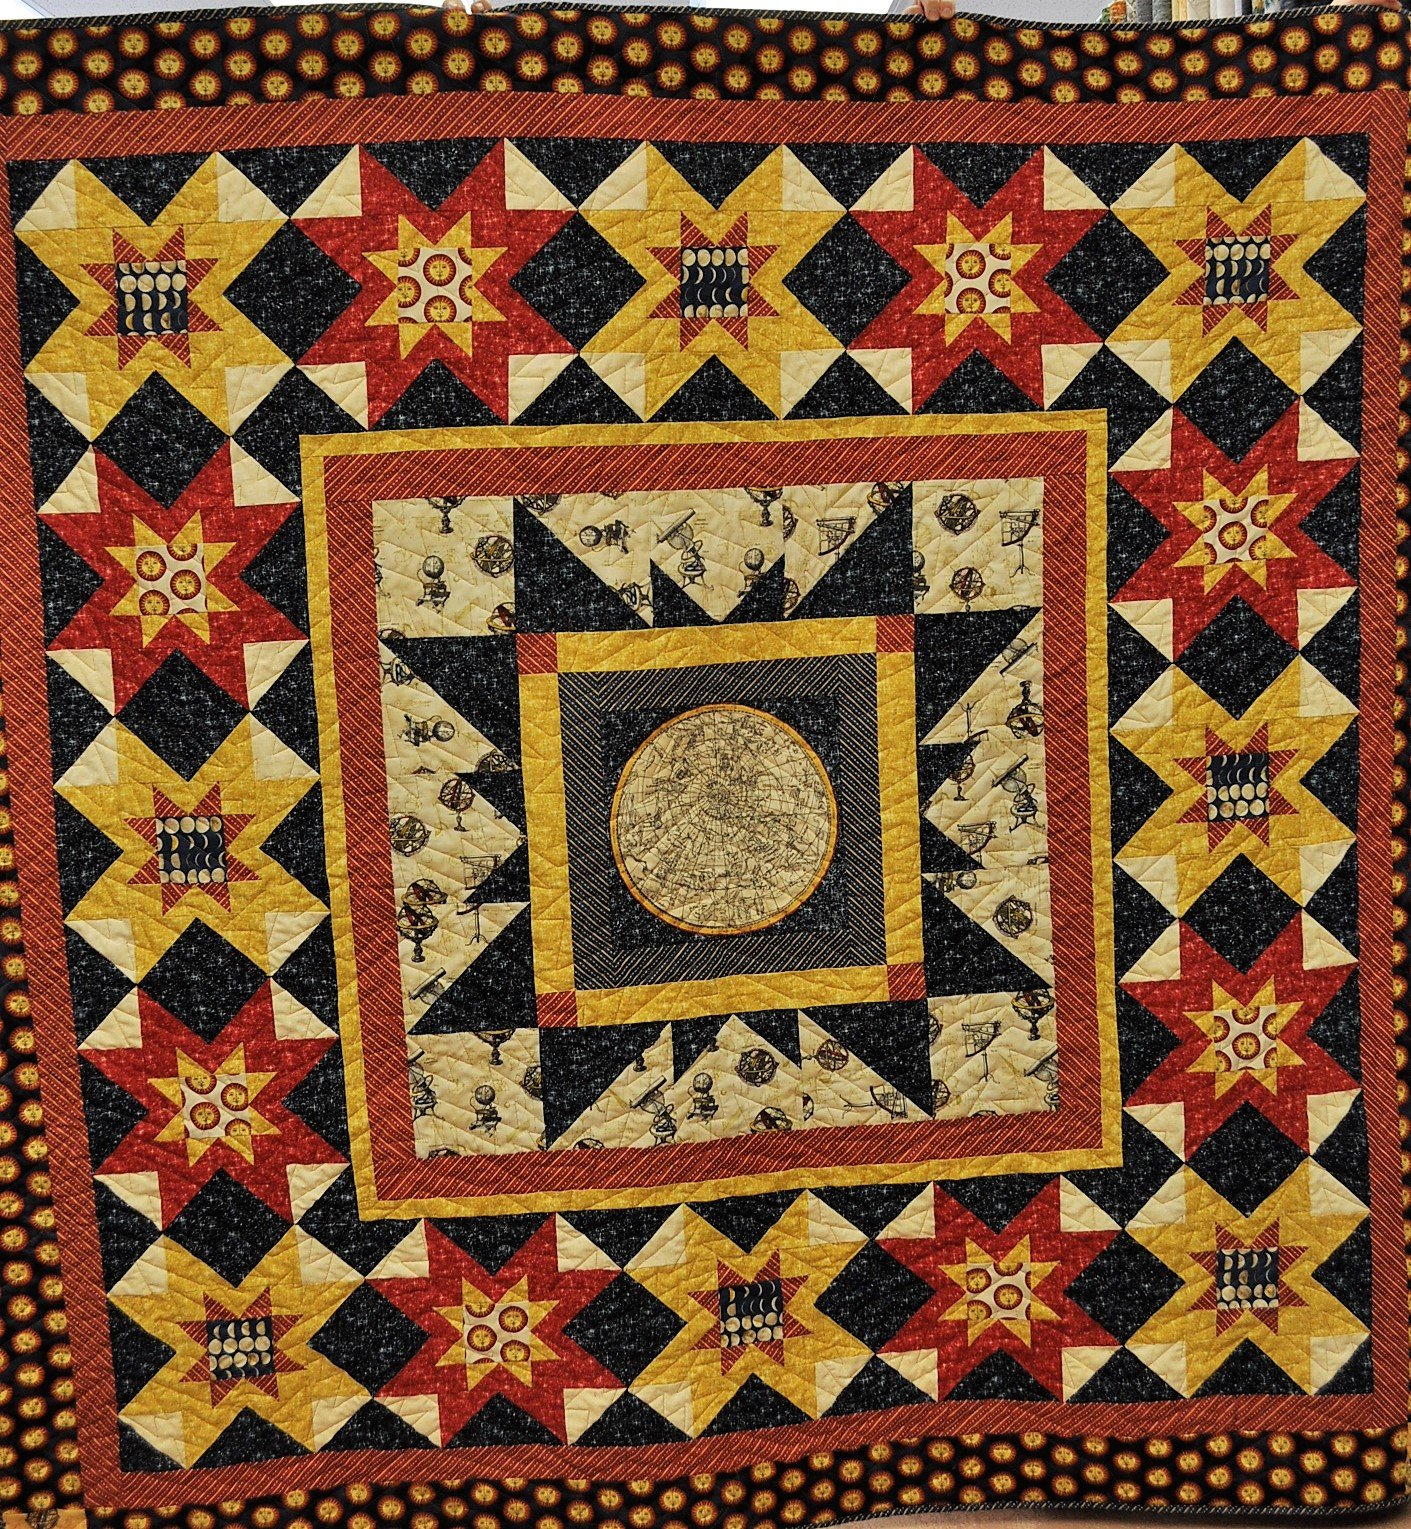 Star Gazer Quilt Kit